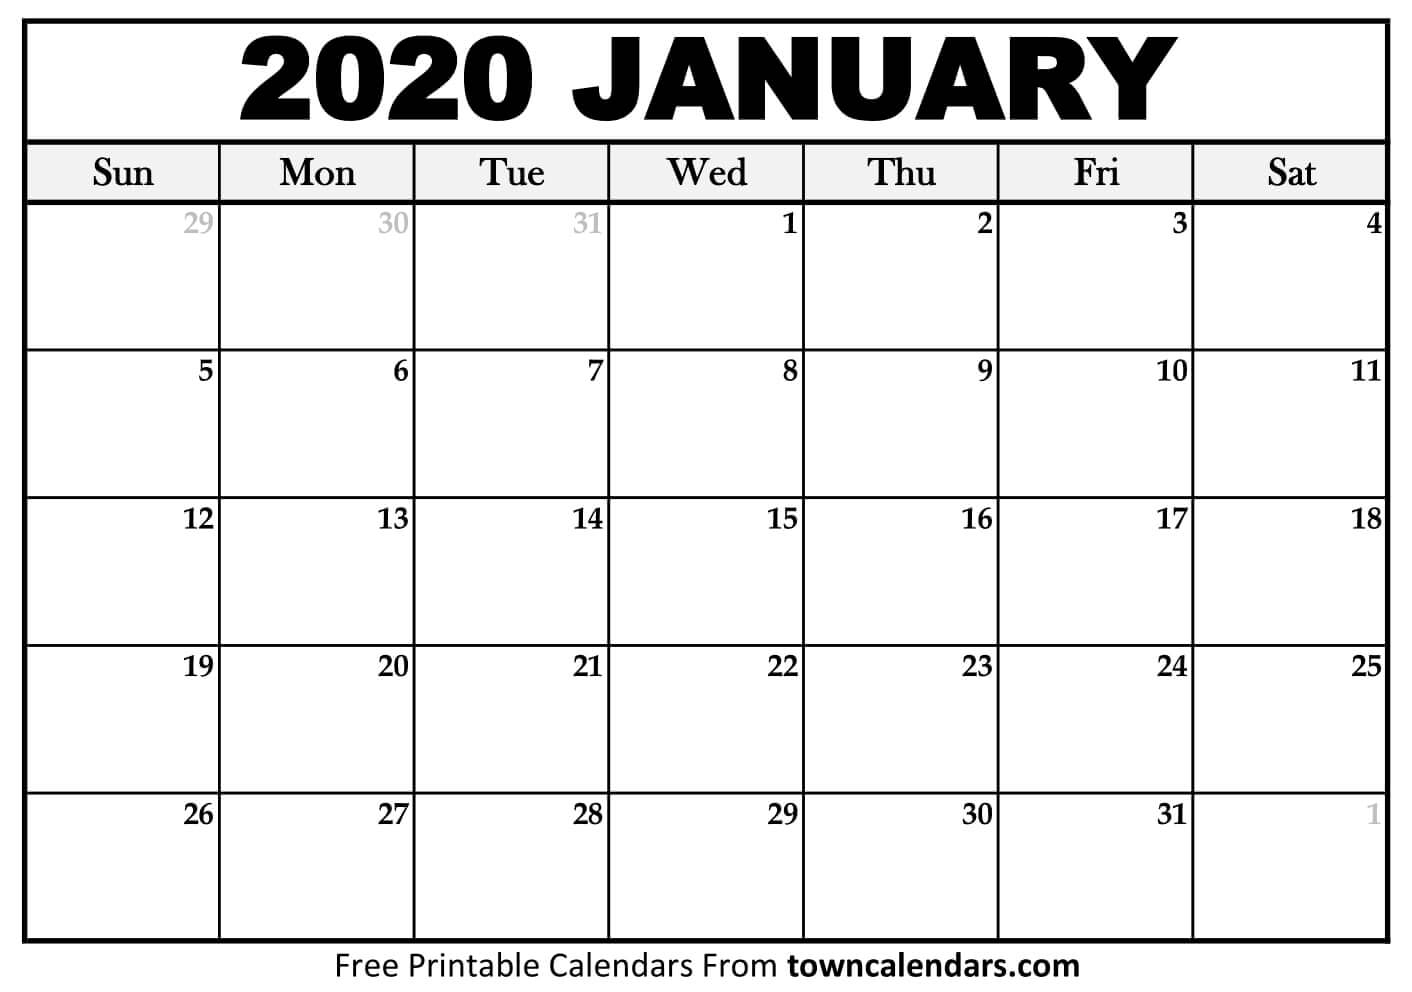 Printable January 2020 Calendar  Towncalendars inside Calander January 2020